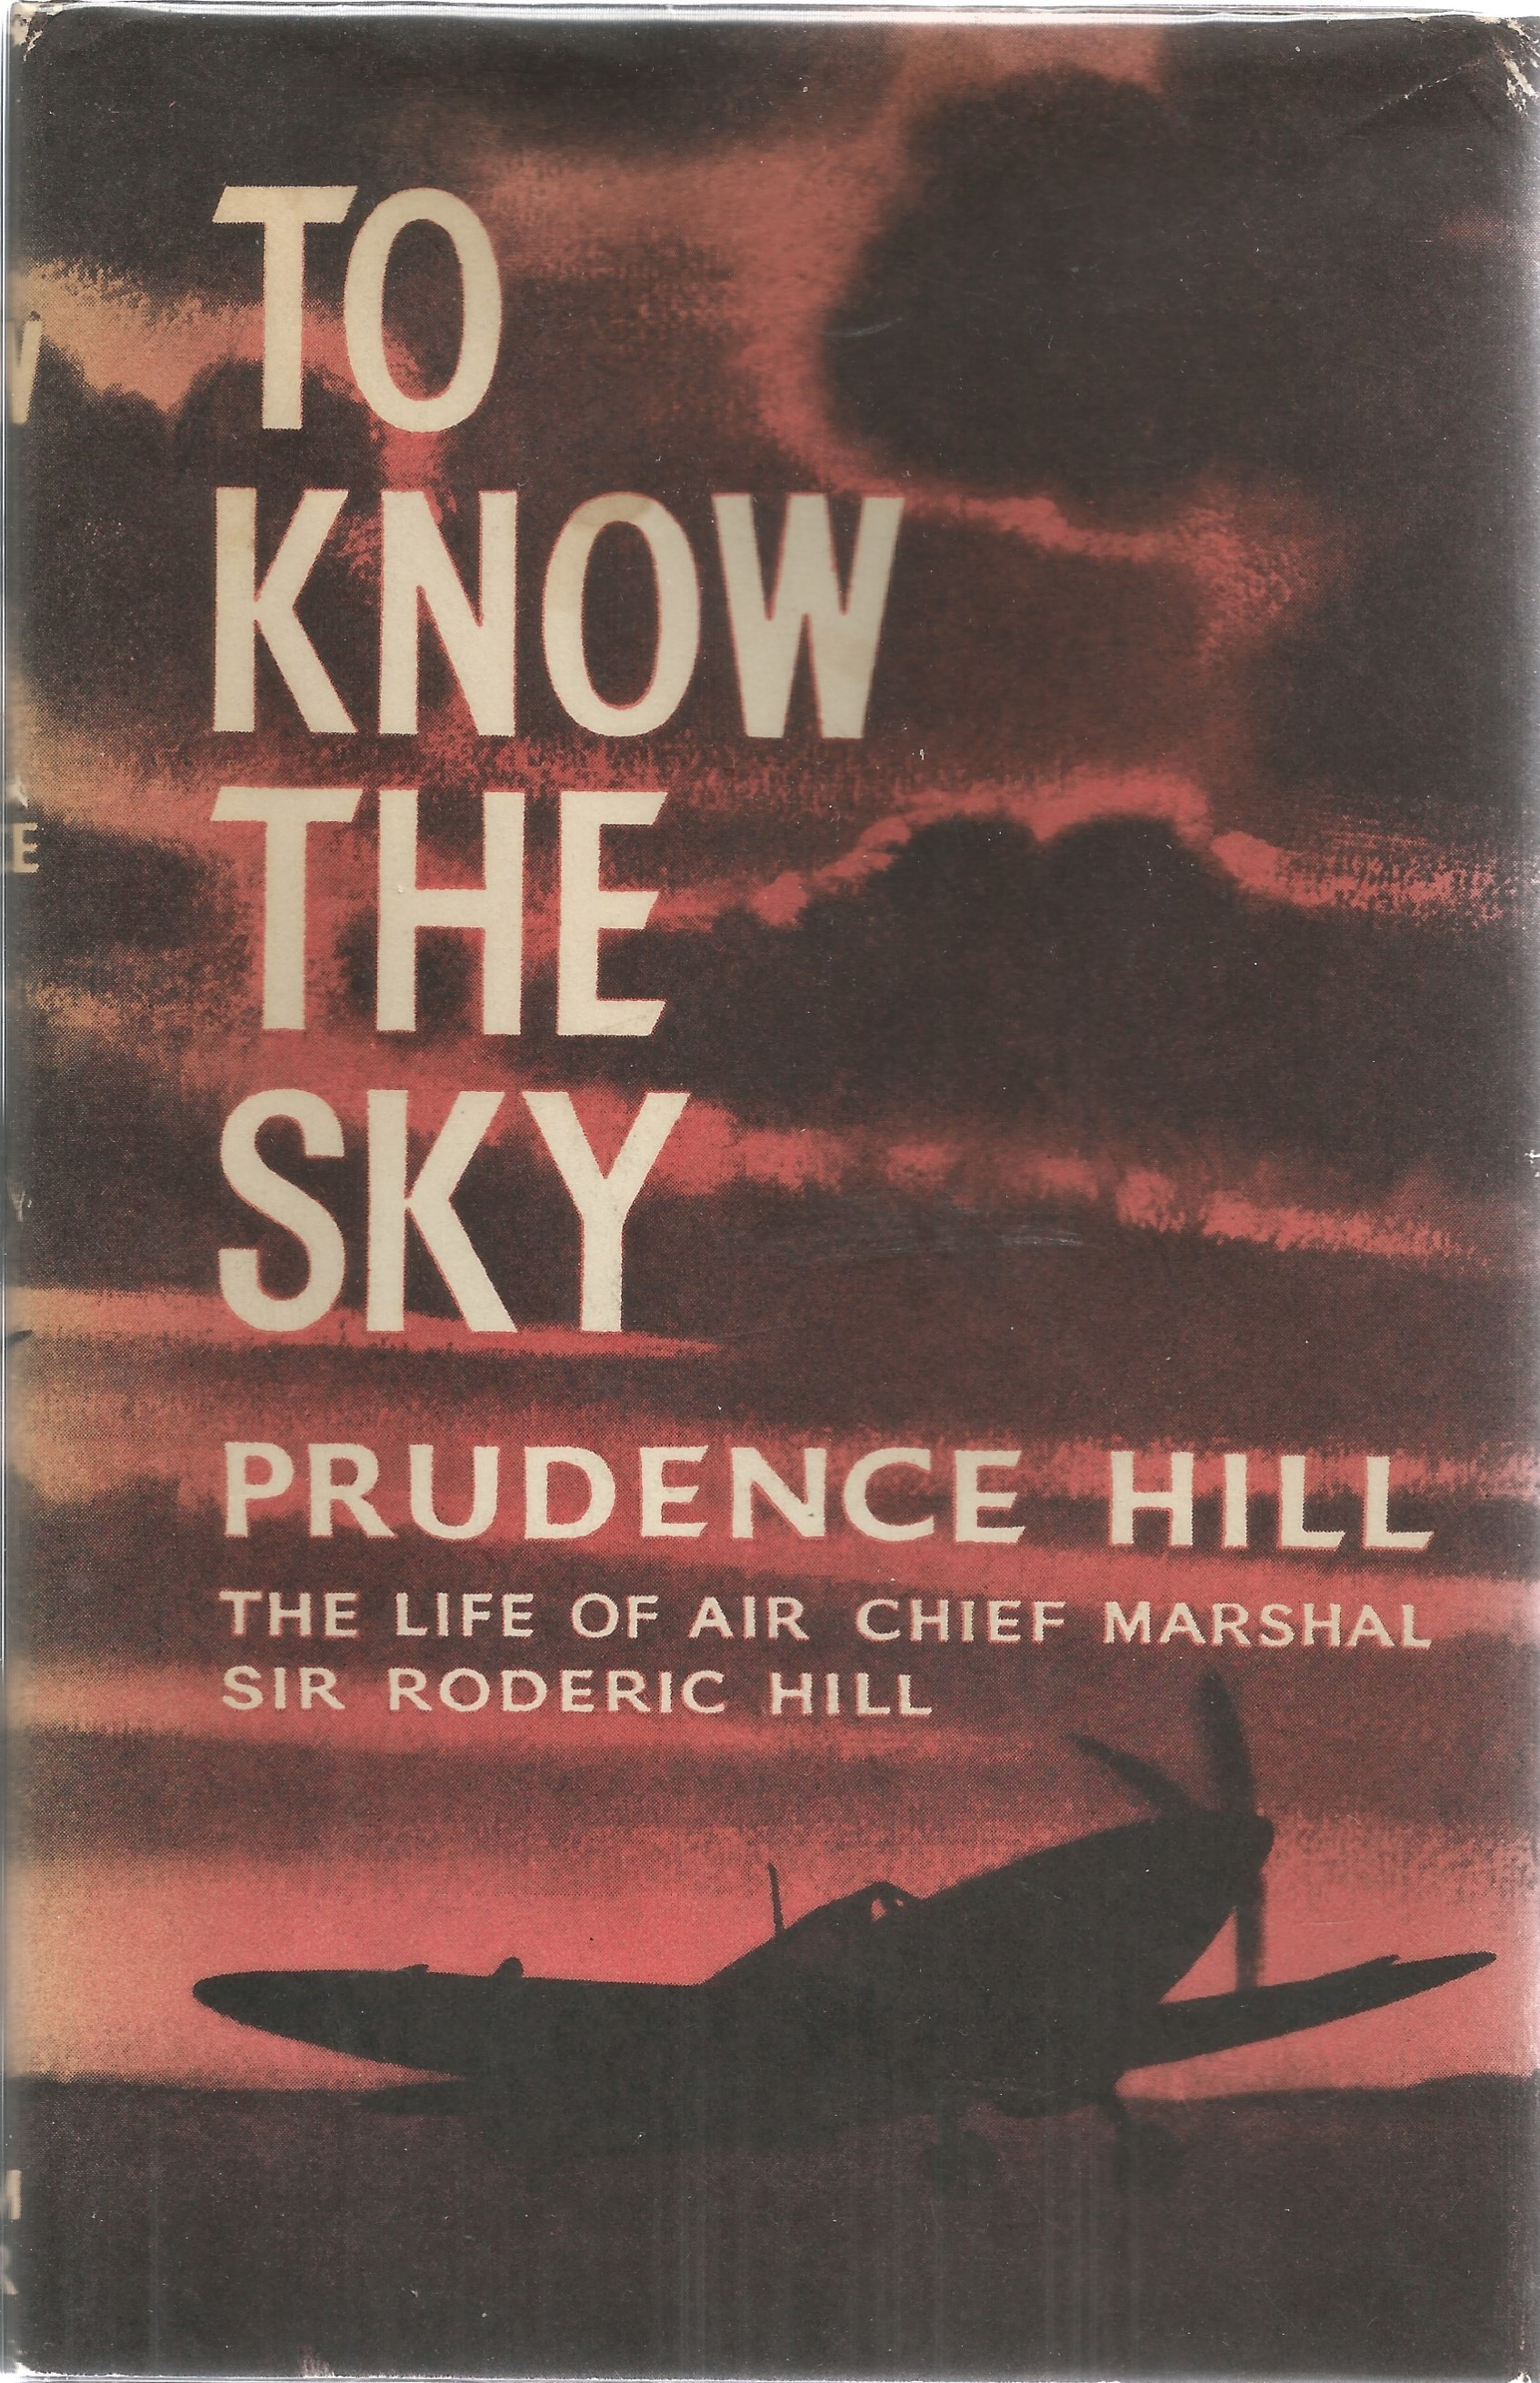 Prudence Hill. To Know The Sky, the life of Air Chief Marshal Sir Roderic Hill. A WW2 First